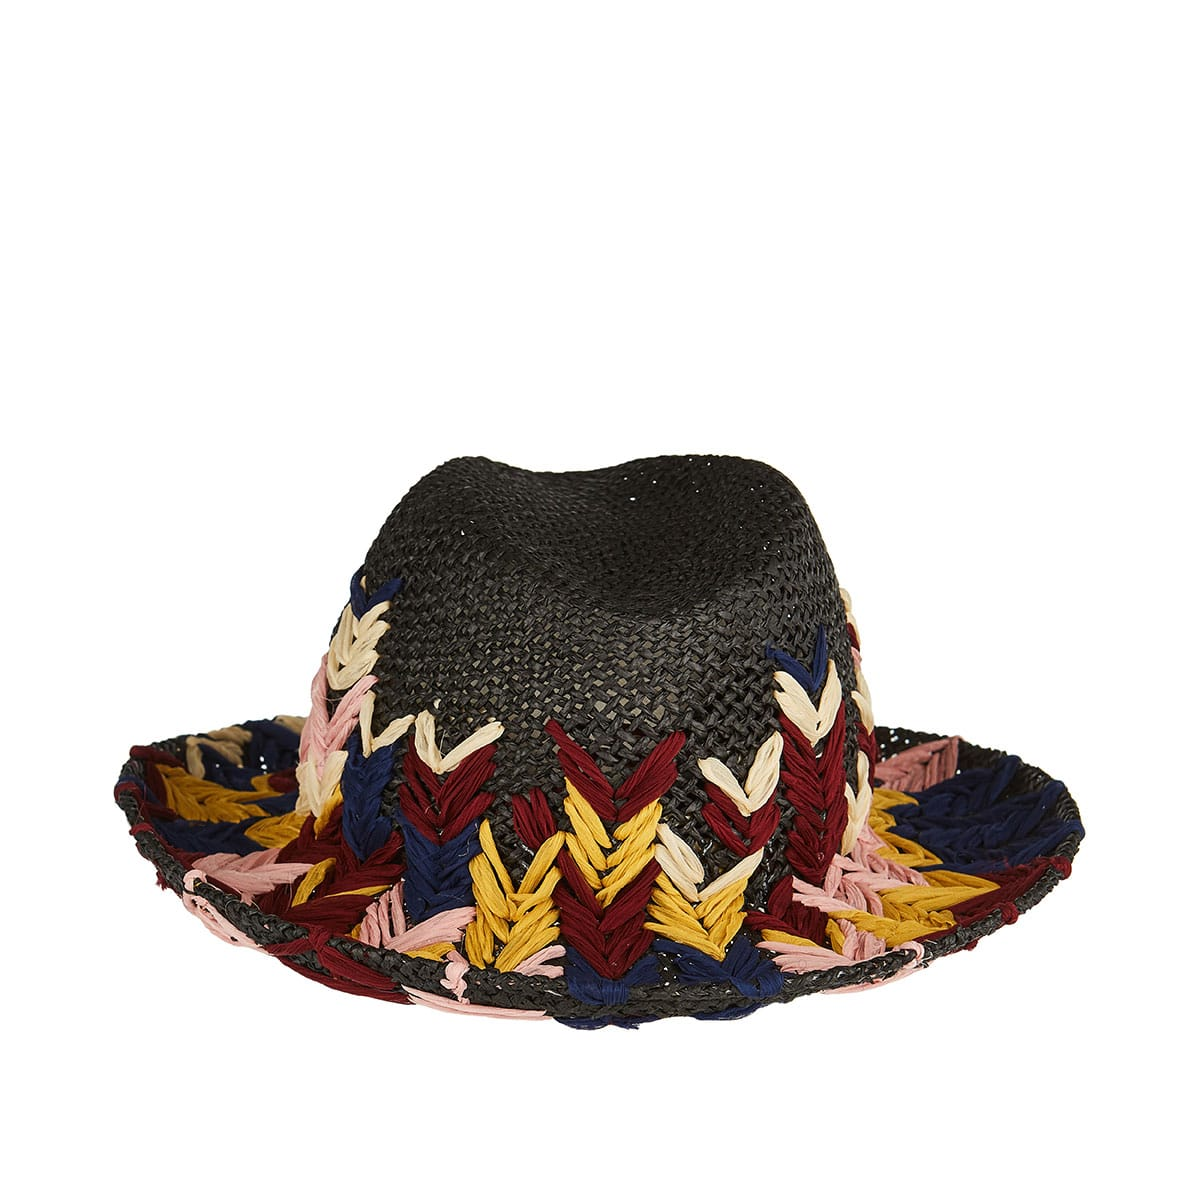 Interlaced silk and raffia hat